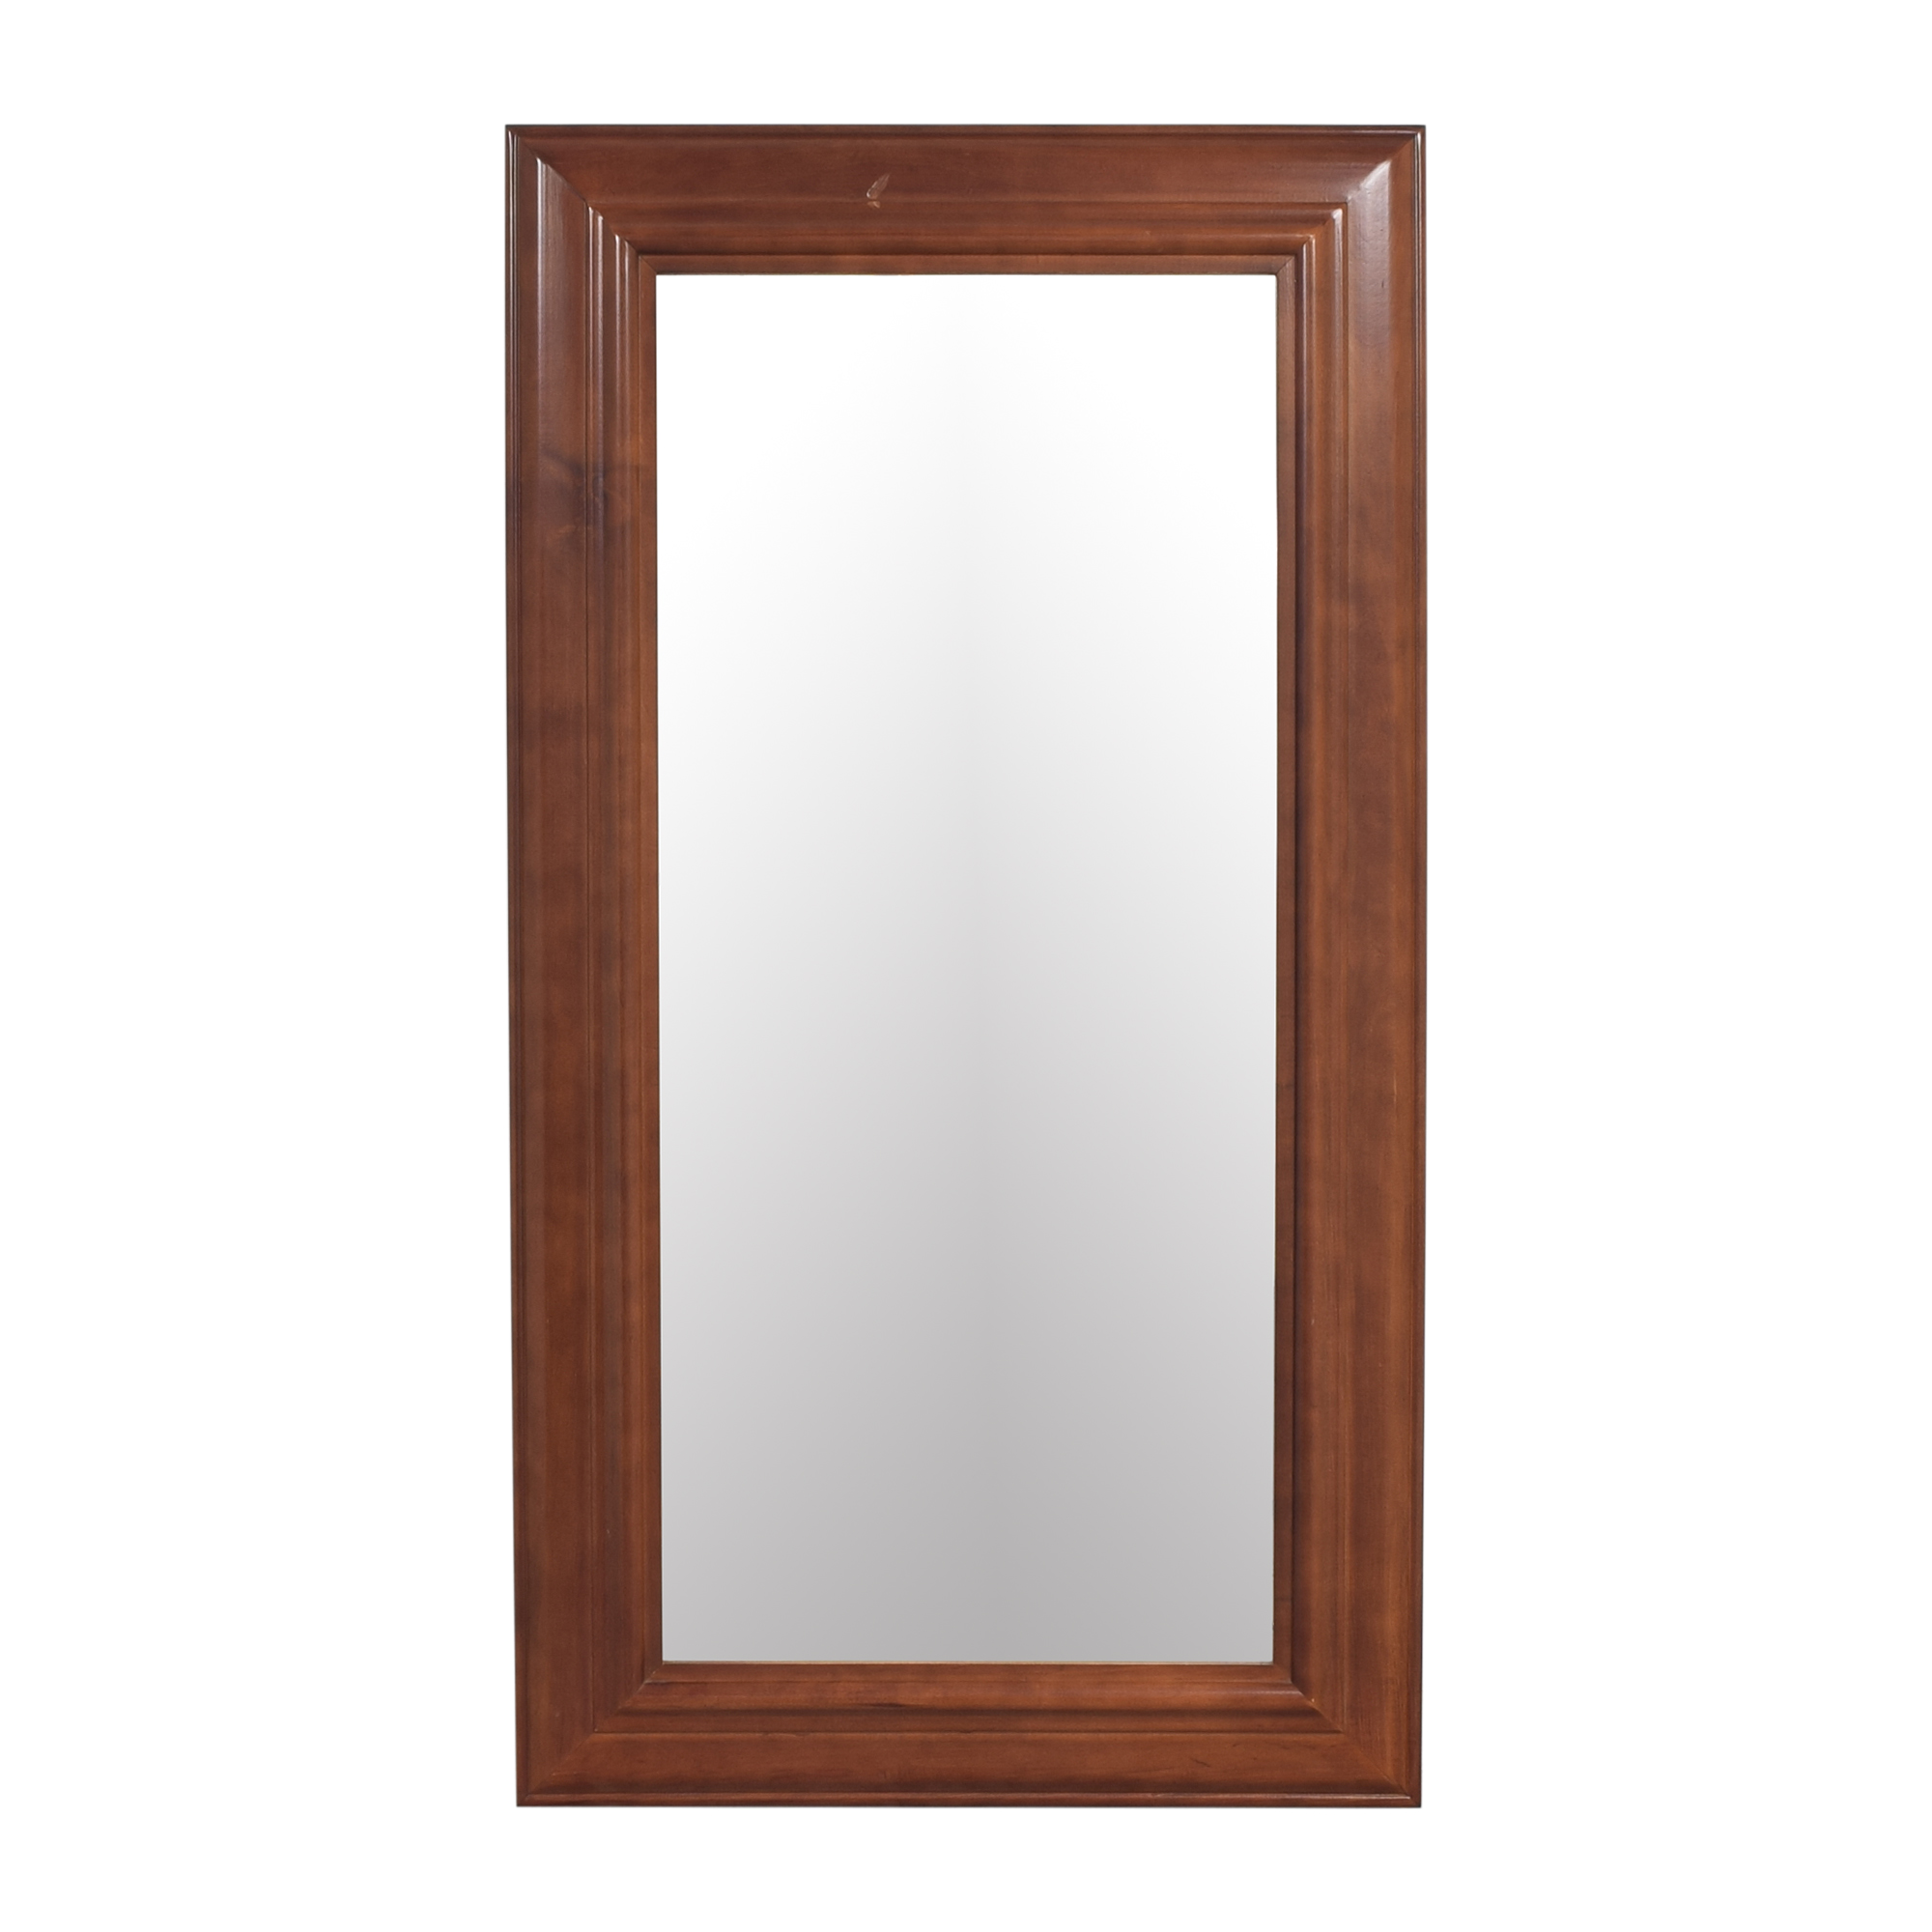 Pottery Barn Pottery Barn Framed Floor Mirror for sale